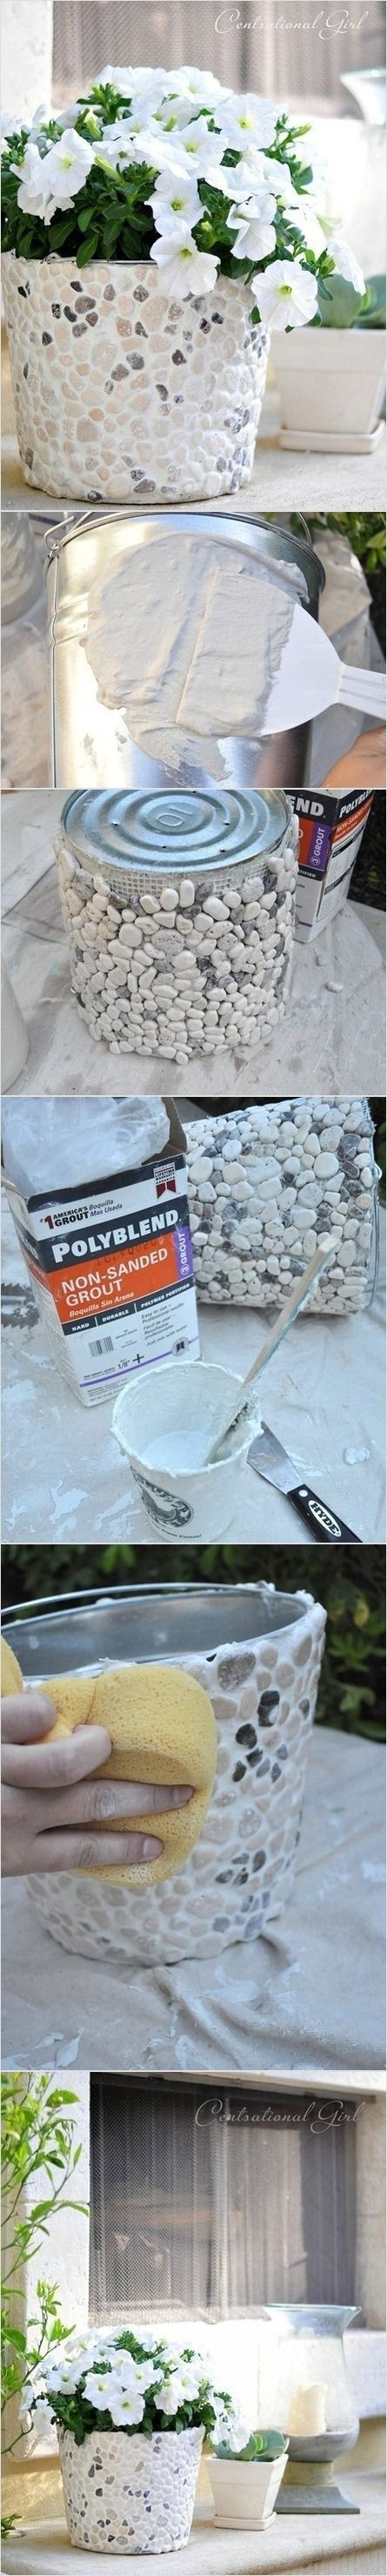 Make your own stone flower pot | Posh Properties Austin